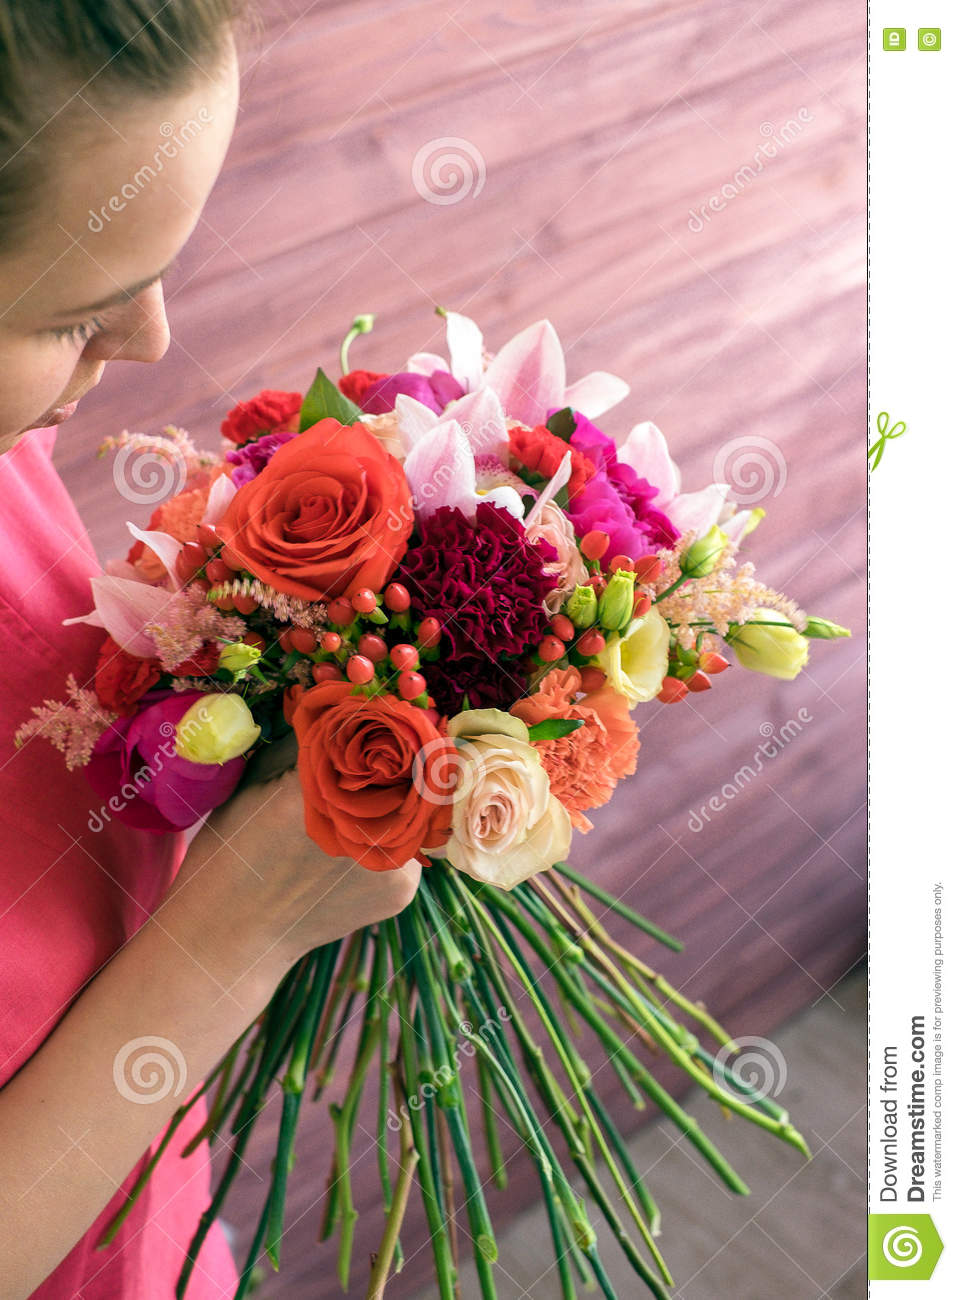 Girl Florist Making A Wedding Bouquet Stock Image - Image of green ...